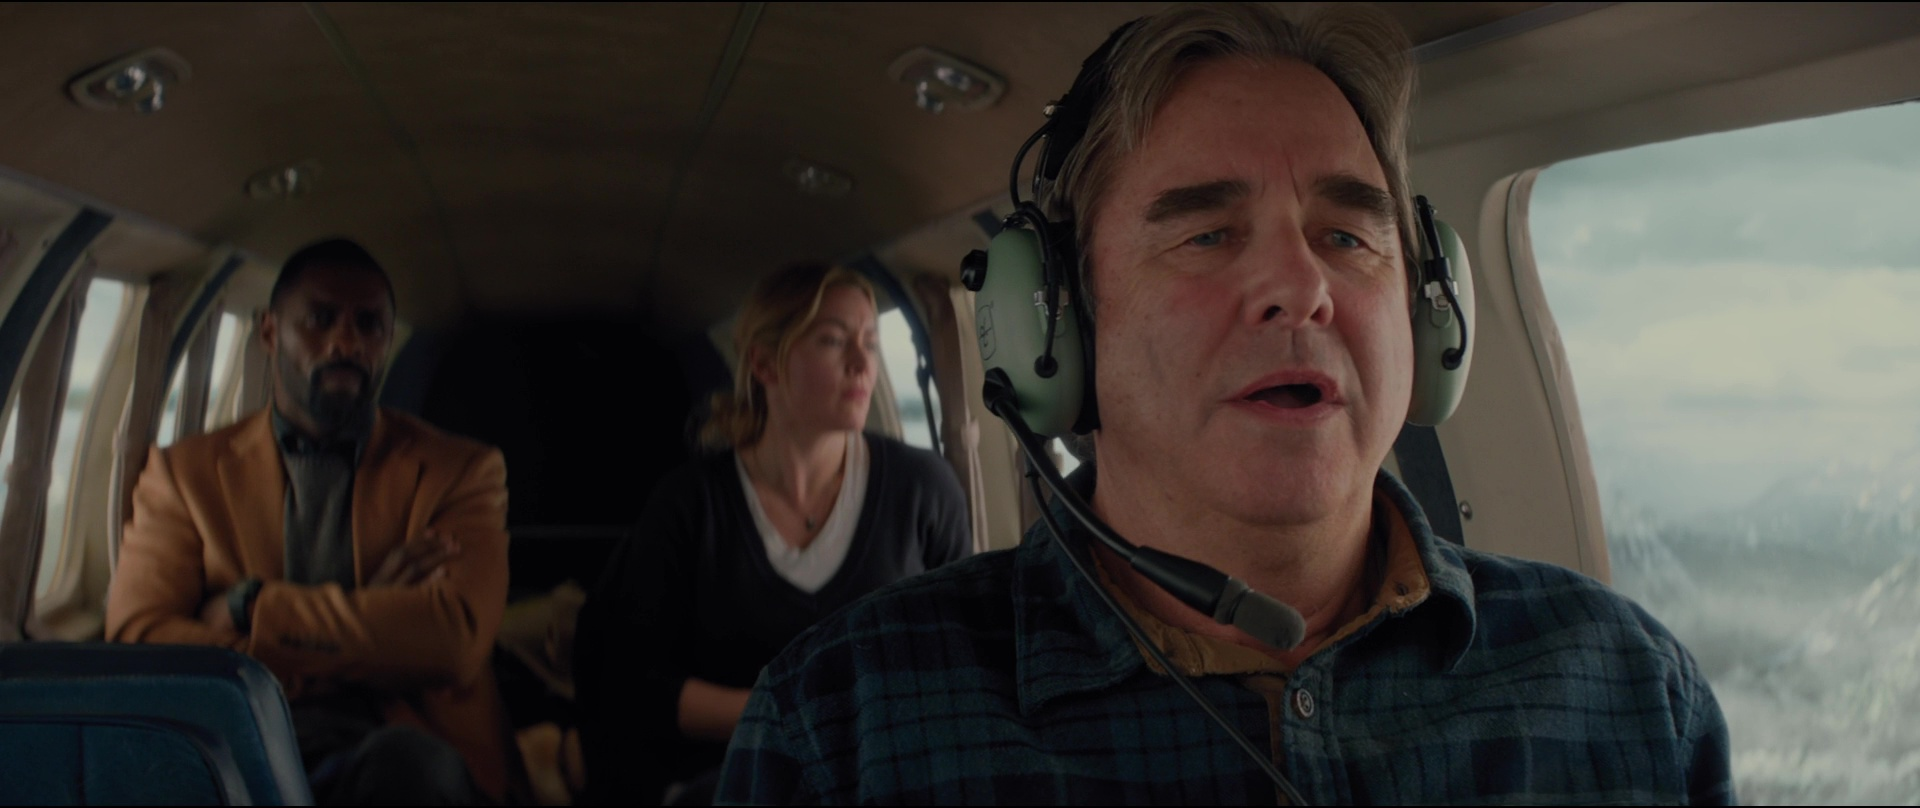 David Clark Headsets Used By Beau Bridges In The Mountain